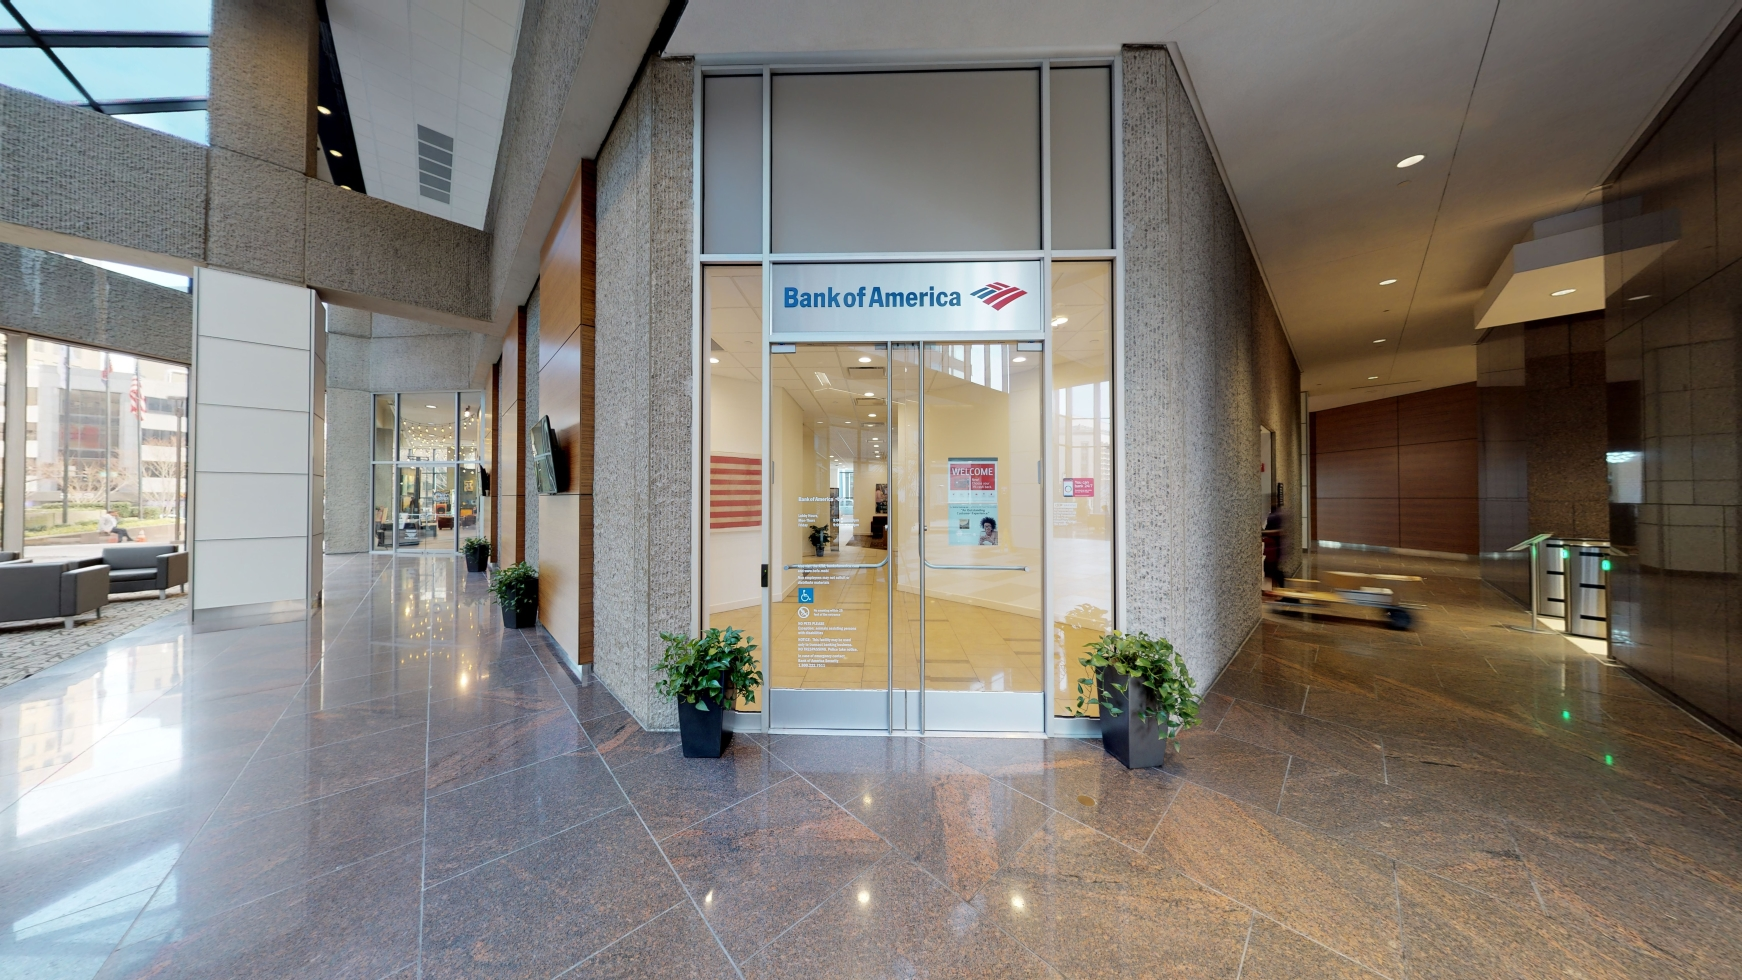 Bank of America financial center with walk-up ATM | 414 Union St, Nashville, TN 37219